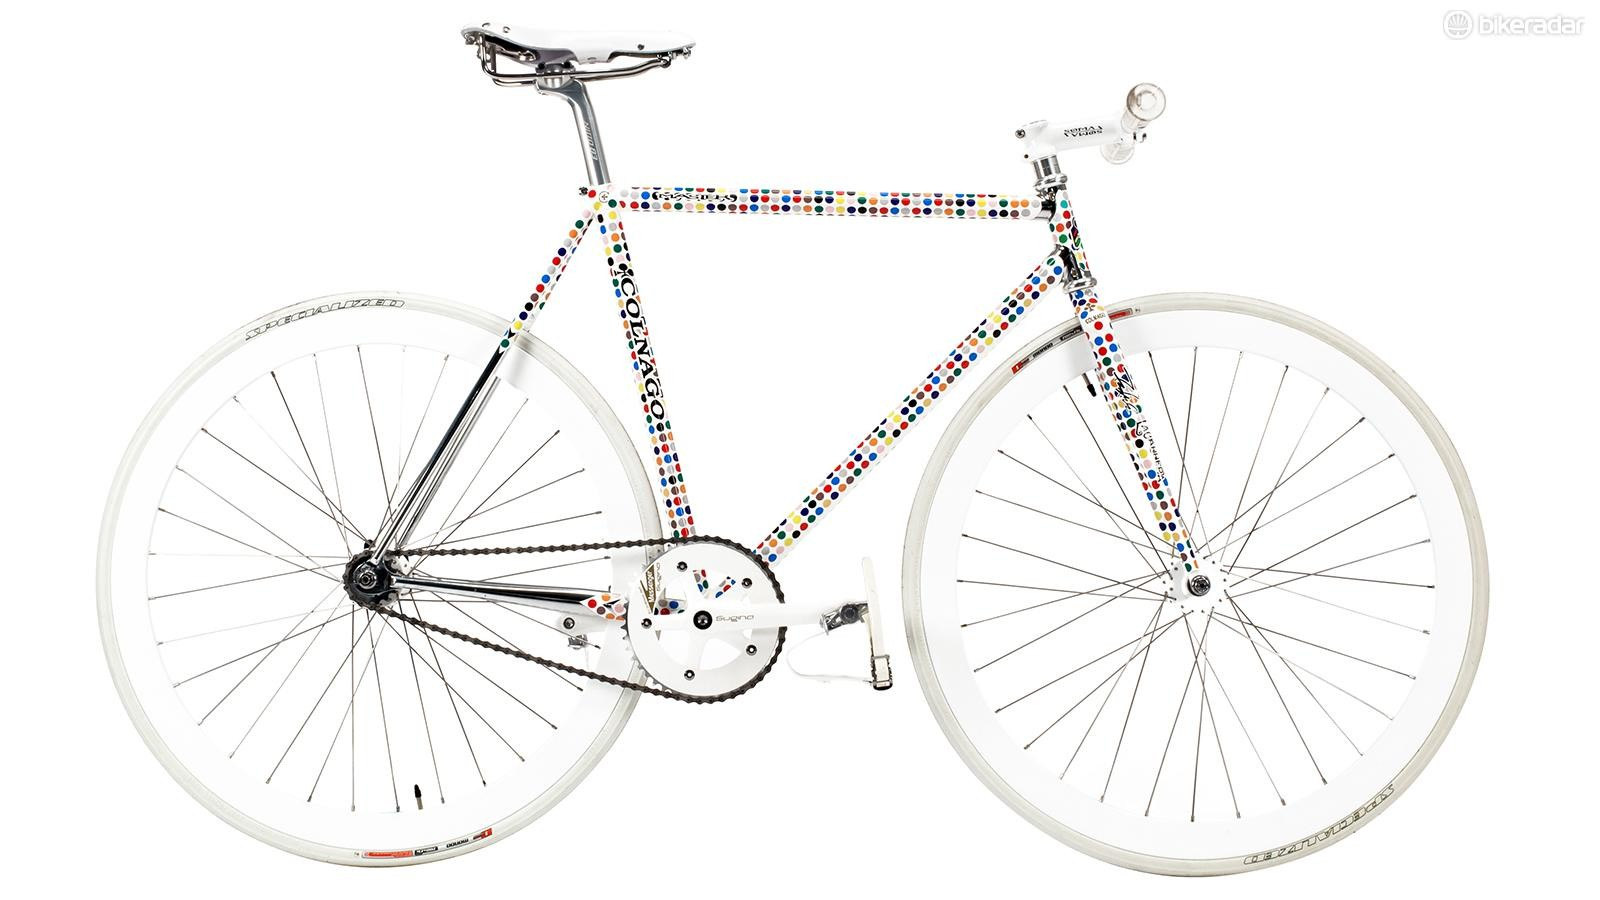 This limited edition Colnago fixed gear features a striking polka dot paint scheme.